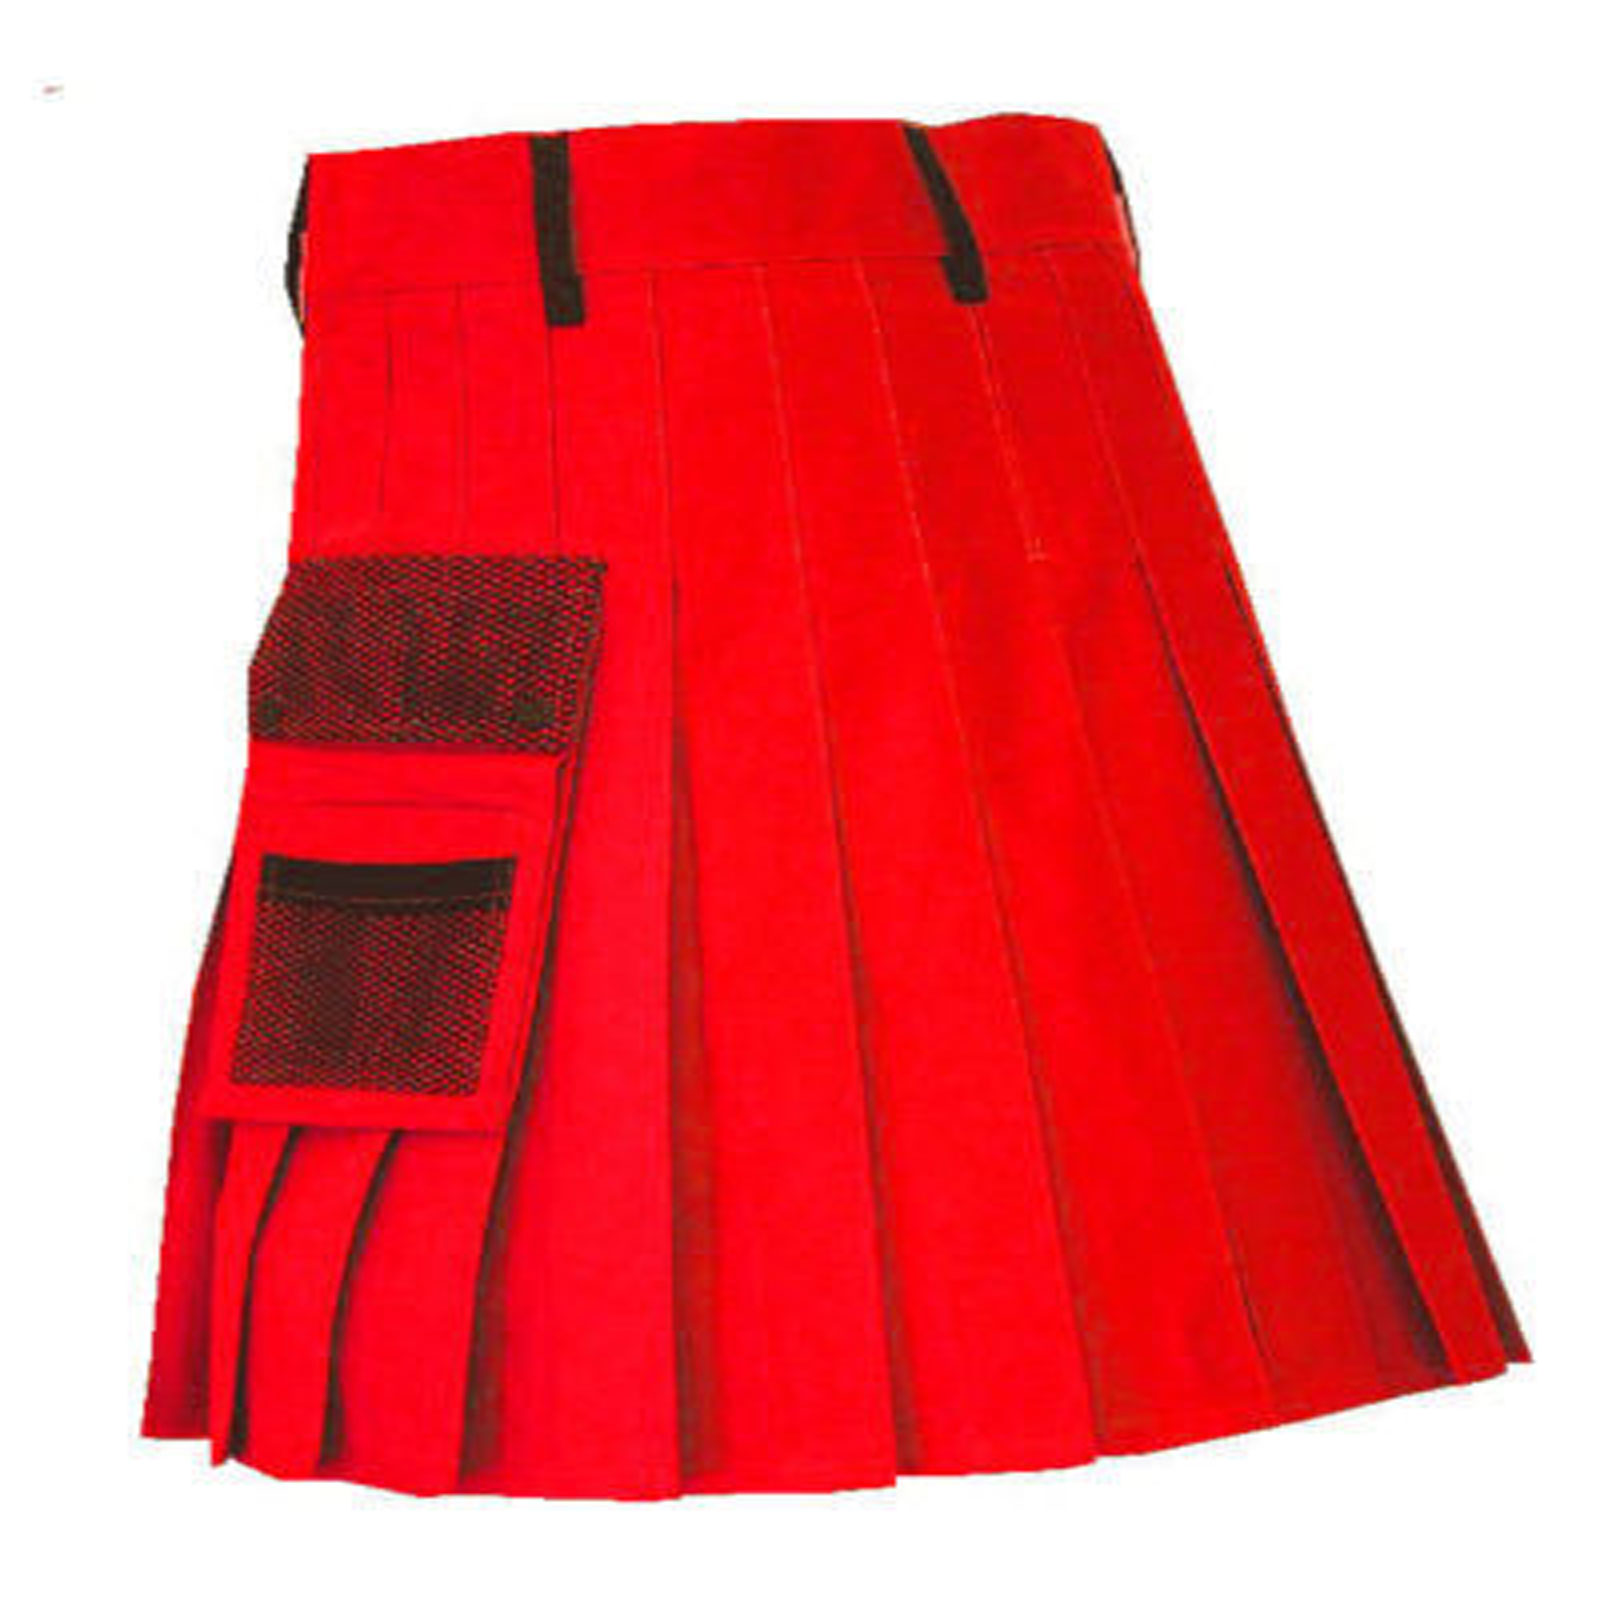 stylish-red-net-pocket-fashion-kilt-front